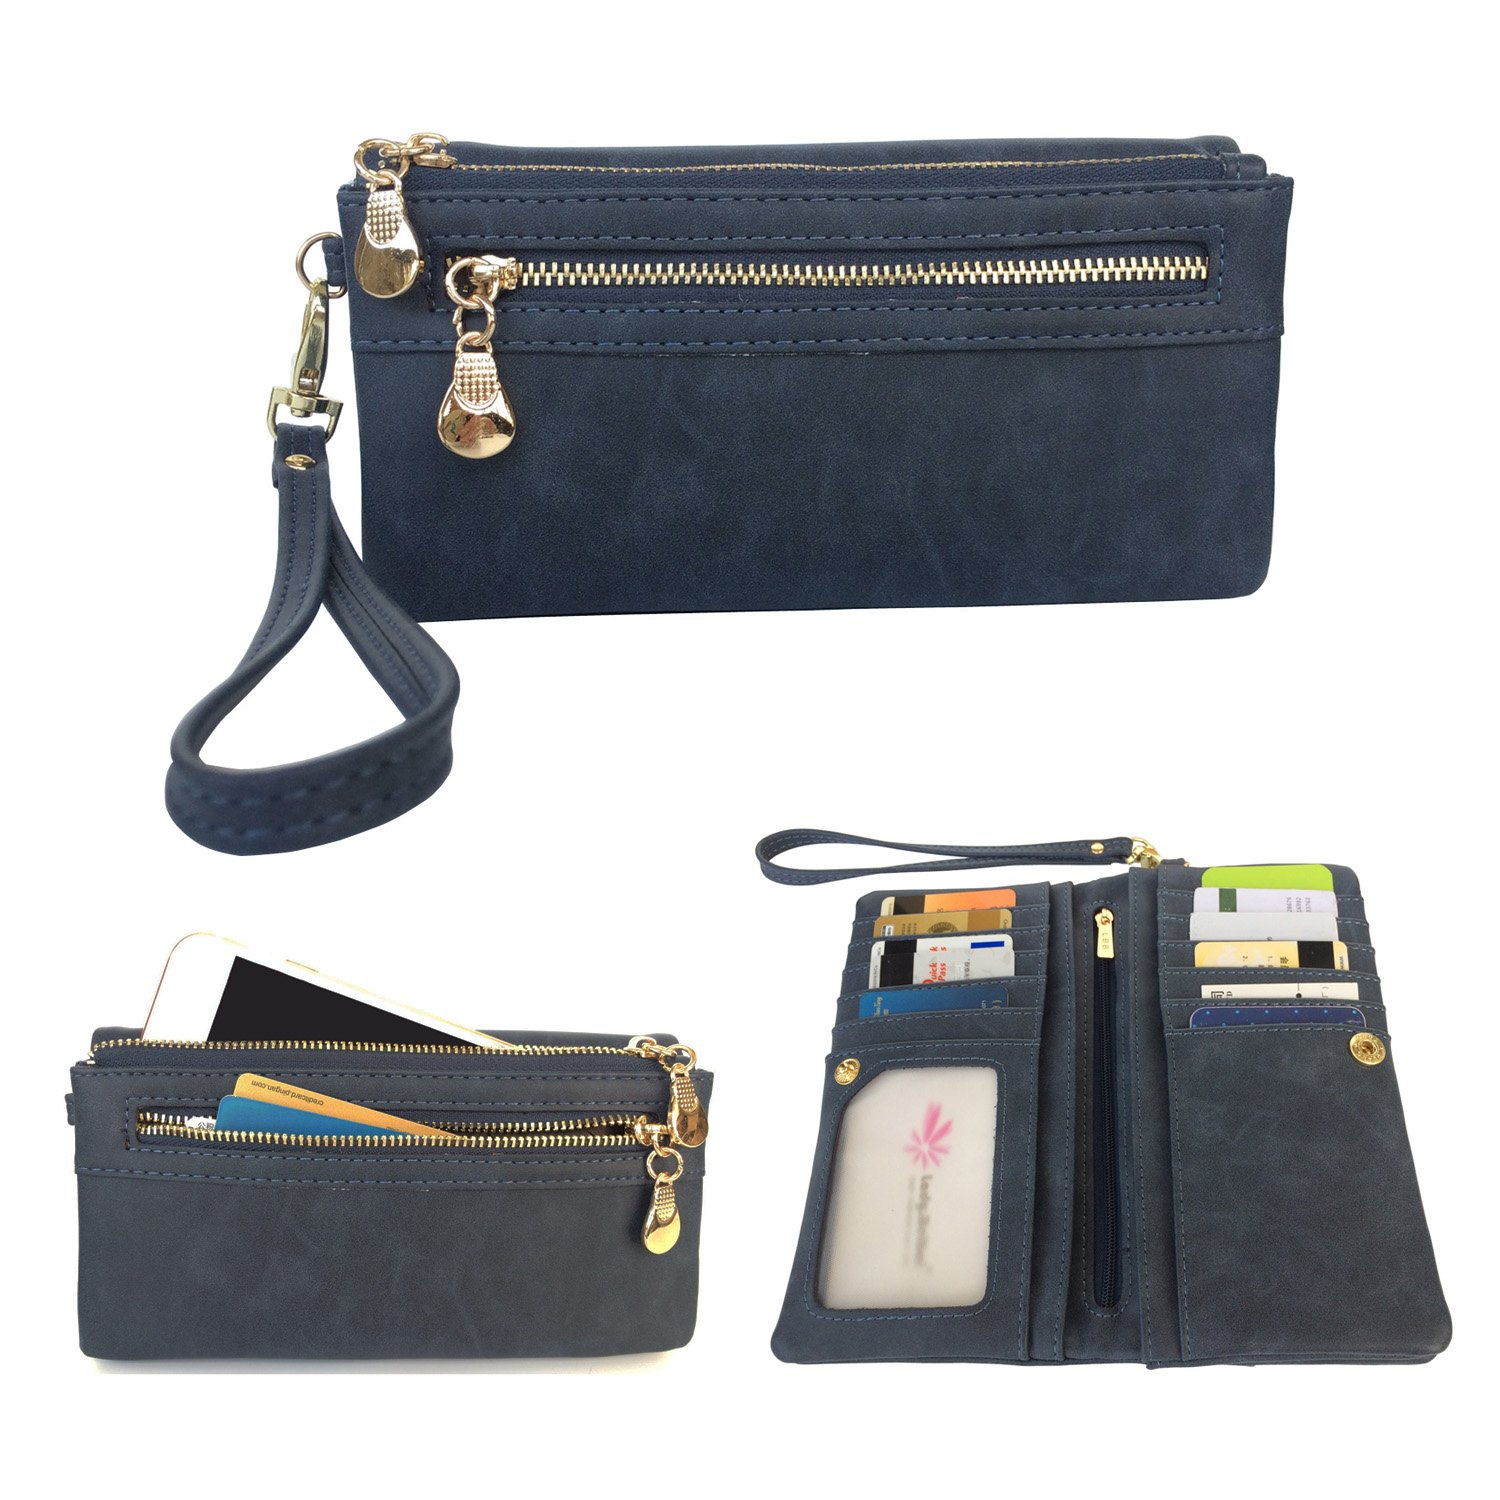 Women's Wristlet Wallet FanCarry PU Leather Clutch Purse Card Organizer w/ Front Zipper Pockets (Dark Blue) by FanCarry